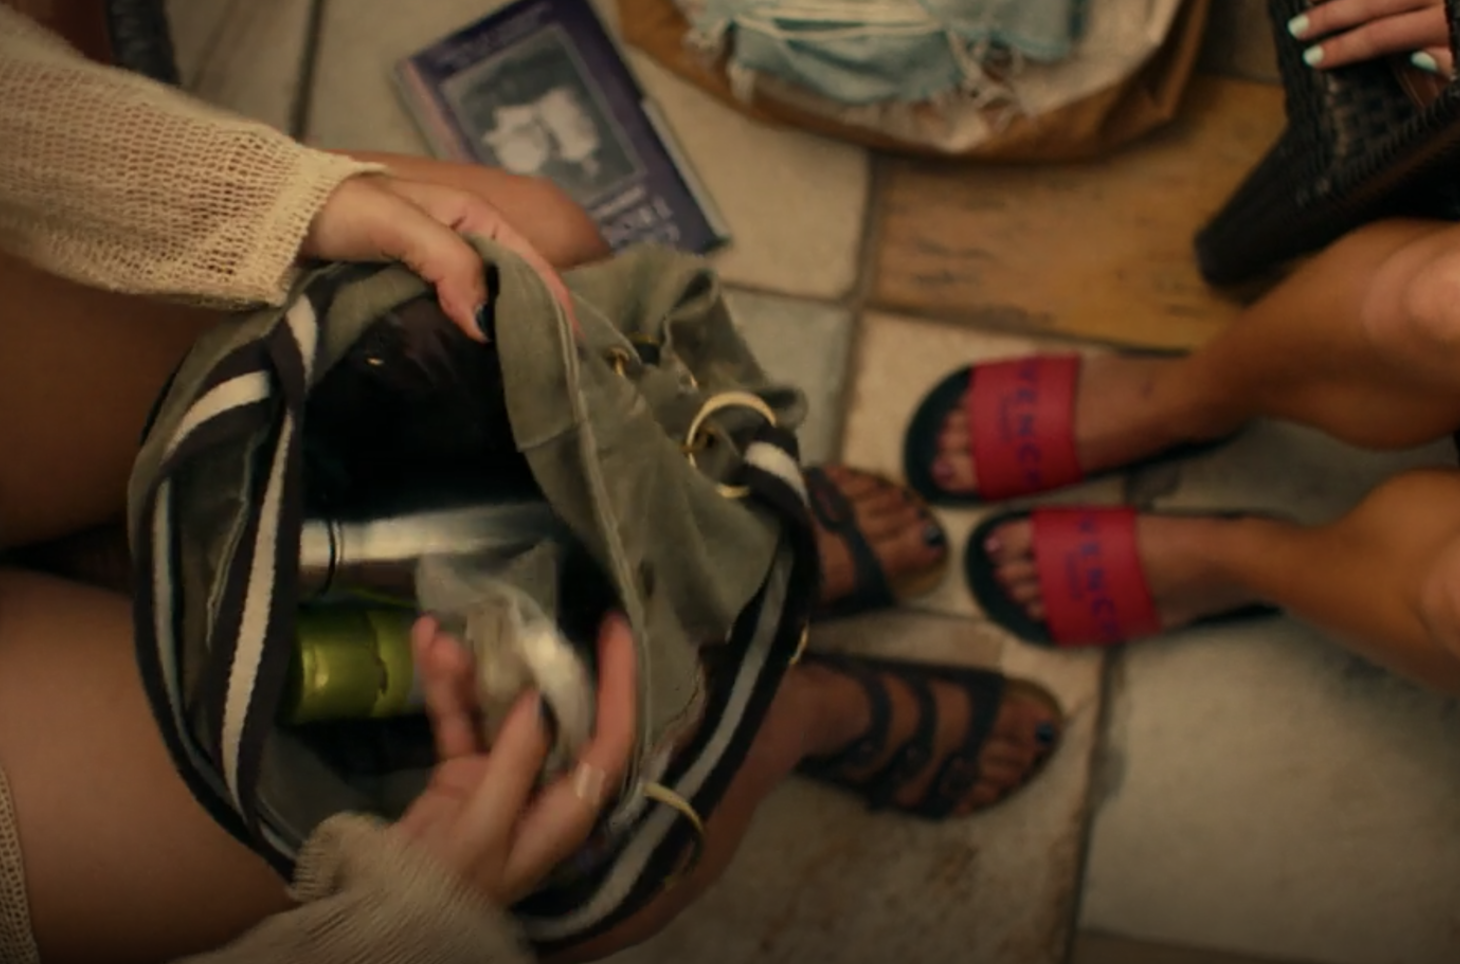 Birds eye view of the floor as Paula digs through her bag setting Gender Trouble to the side